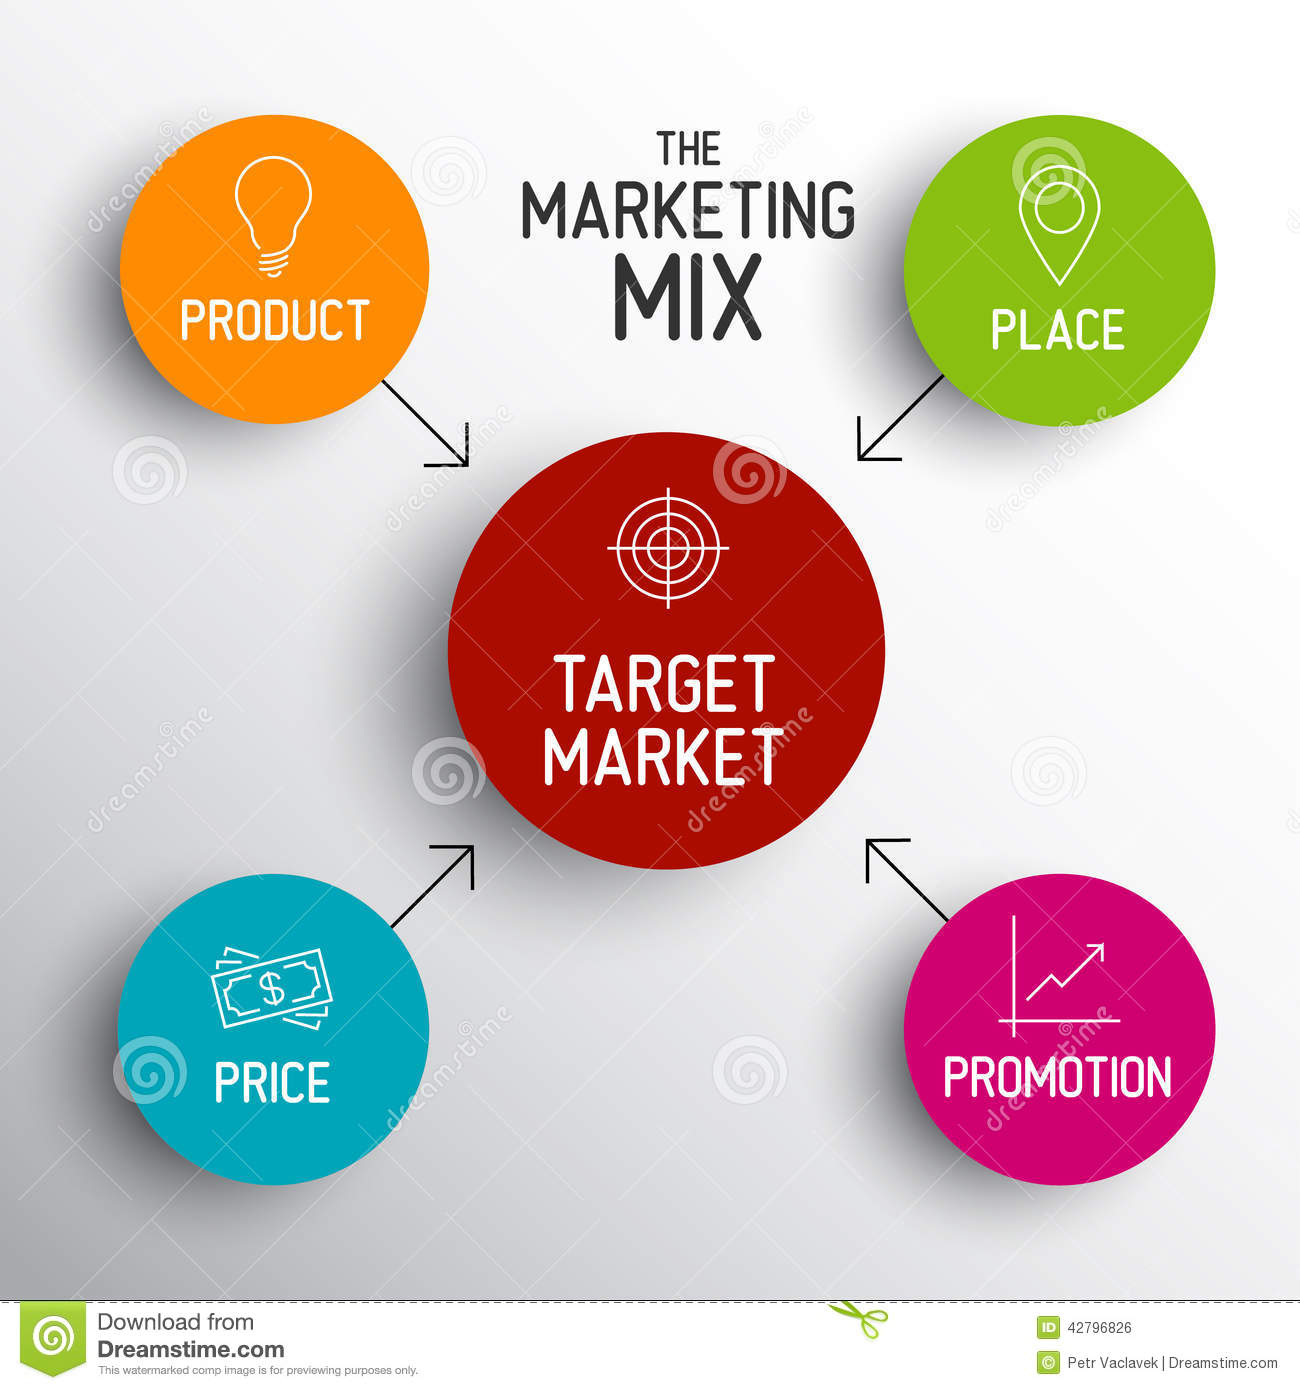 Vector 4P marketing mix model - price, product, promotion and place.: www.dreamstime.com/stock-illustration-p-marketing-mix-model-price...